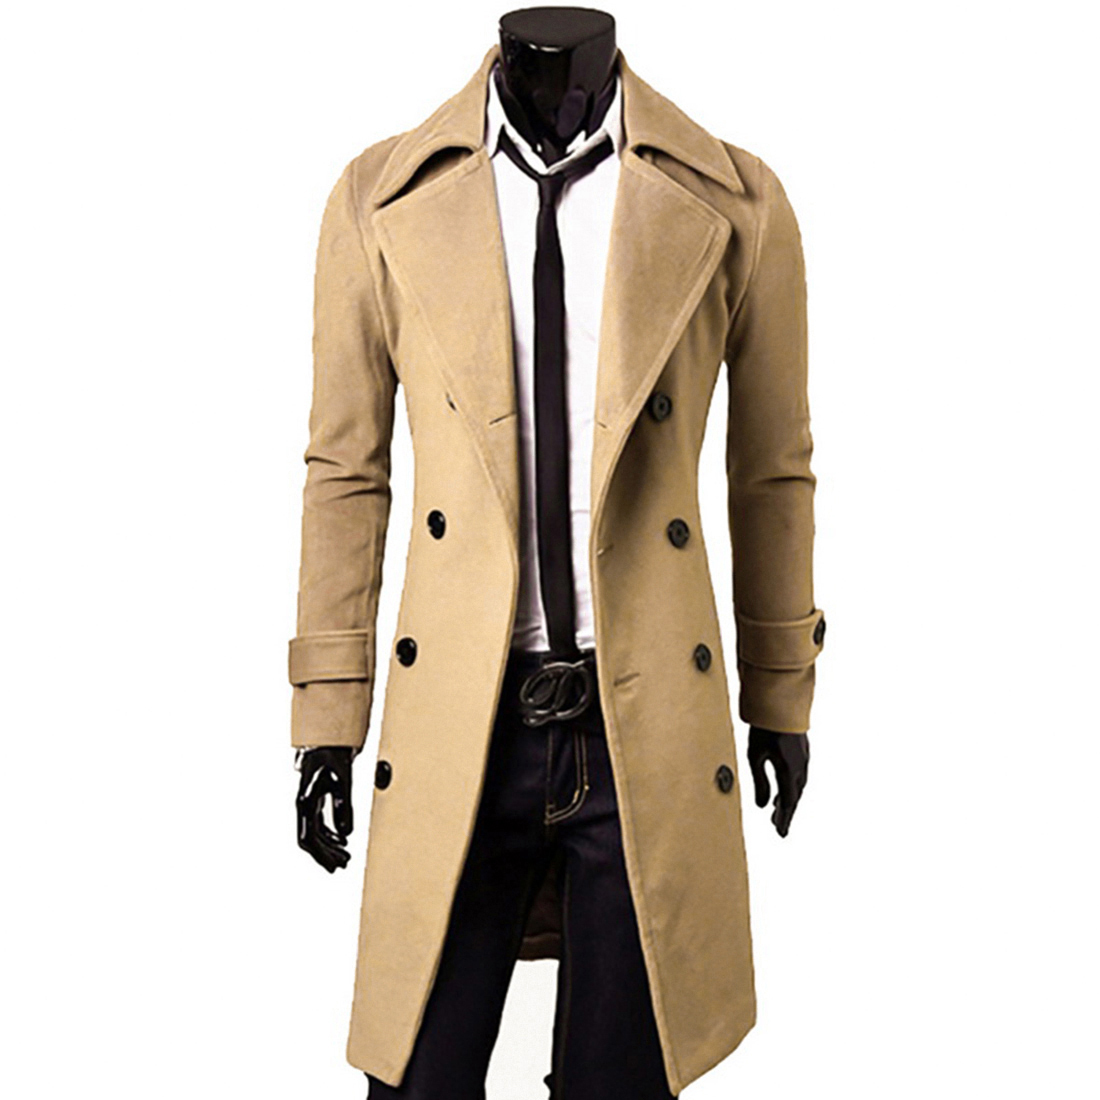 Adisputent 2020 New Autumn Winter Men's Trench Coat Long Sleeve Solid Color Cool Mens Long Coat Cotton Male Overcoat Size M-3XL